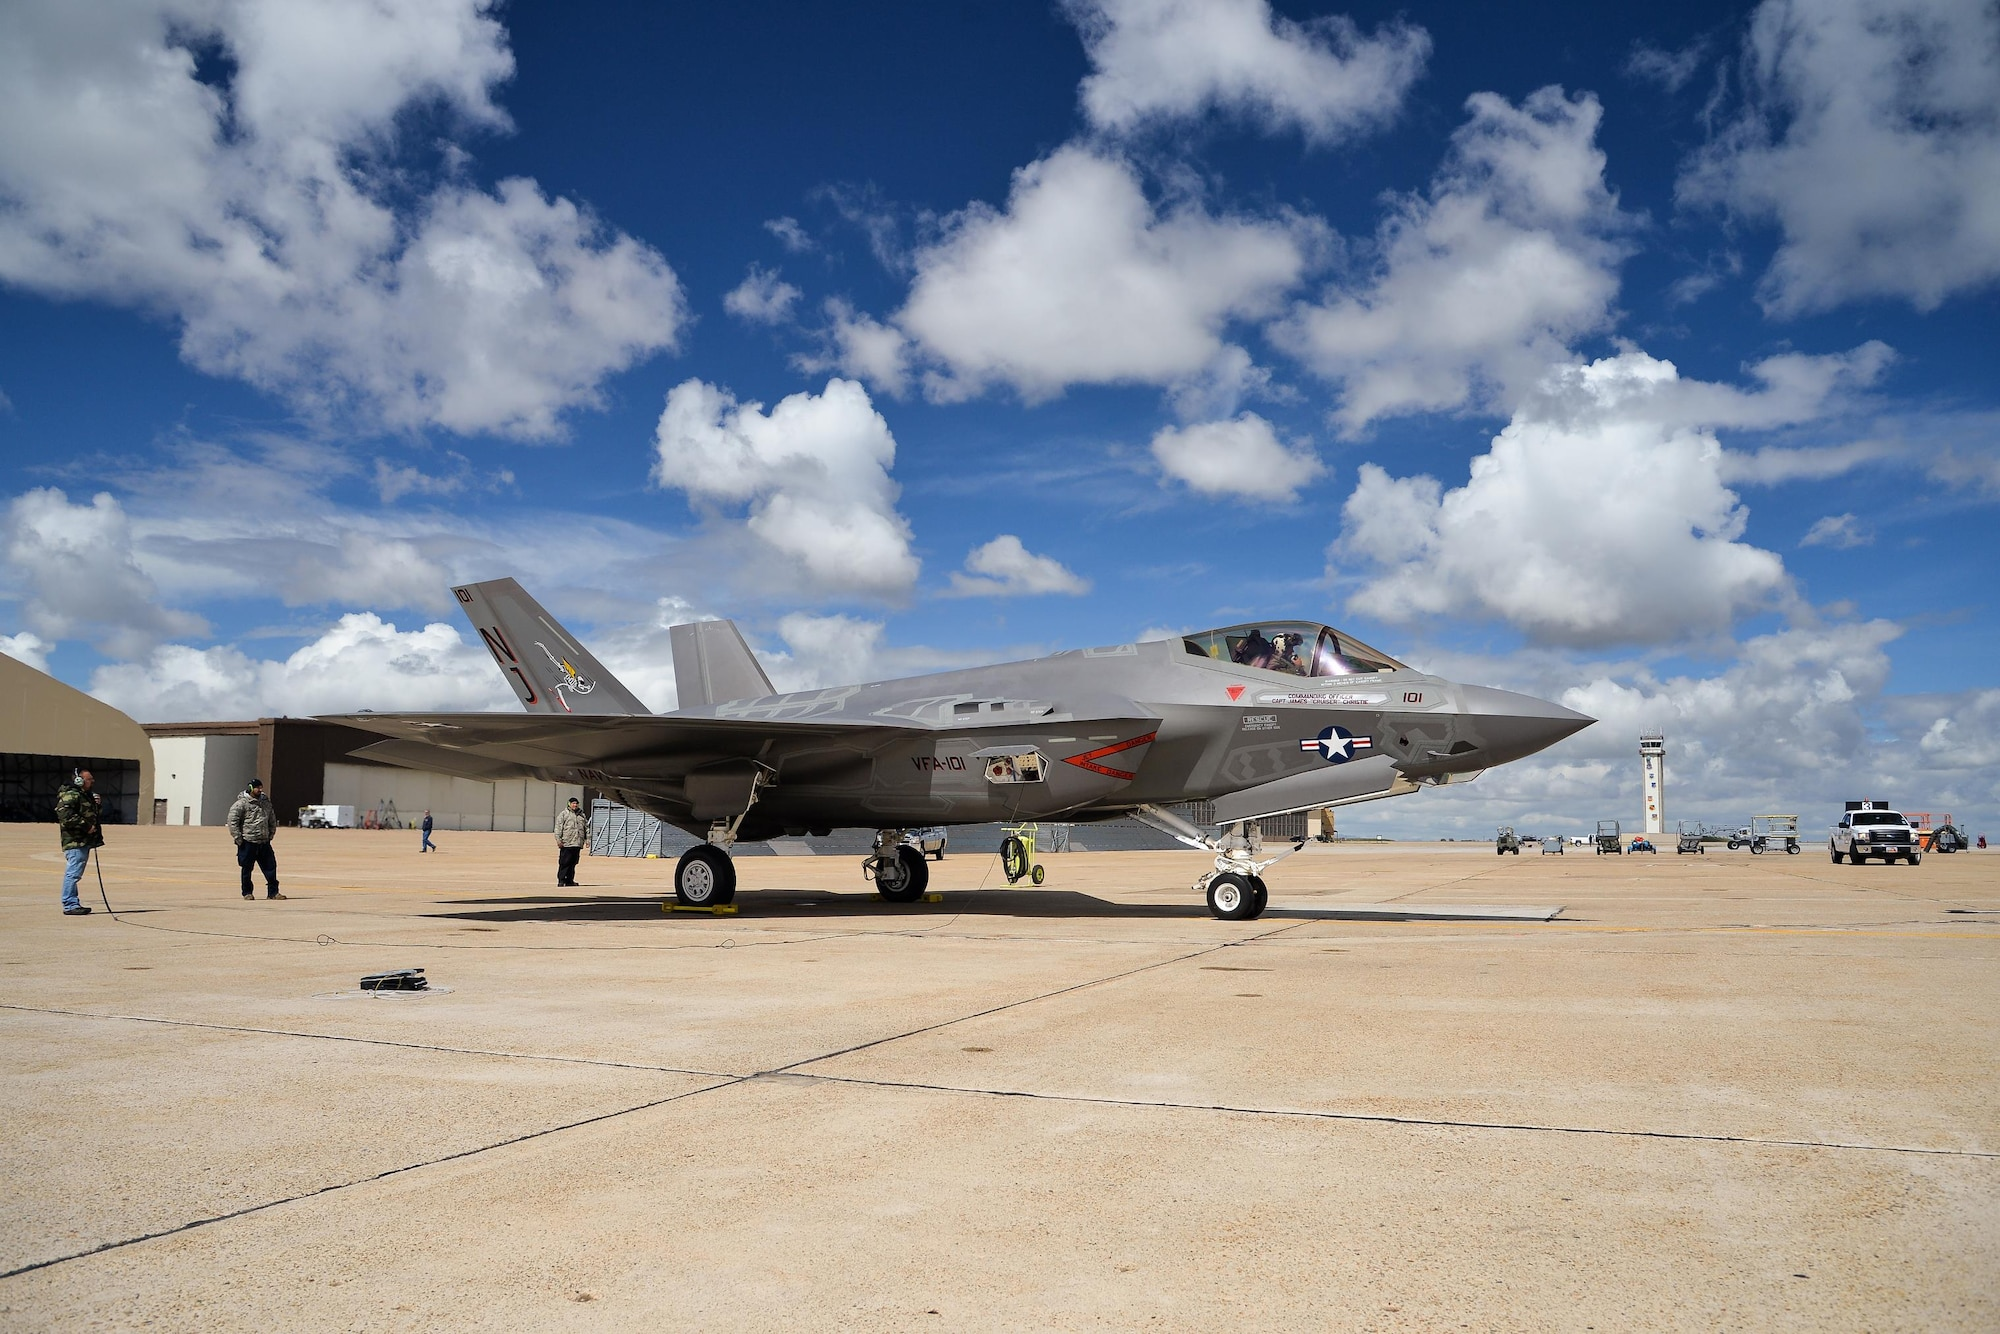 An F-35C Lightning II arrives April 15, 2016, at Hill Force Base, Utah. The aircraft is the first Navy variant to arrive at the base where it will undergo depot modifications through this summer. The aircraft is assigned to the Navy's Strike Fighter Squadron 101 at Eglin AFB, Florida. (U.S. Air Force photo/R. Nial Bradshaw)